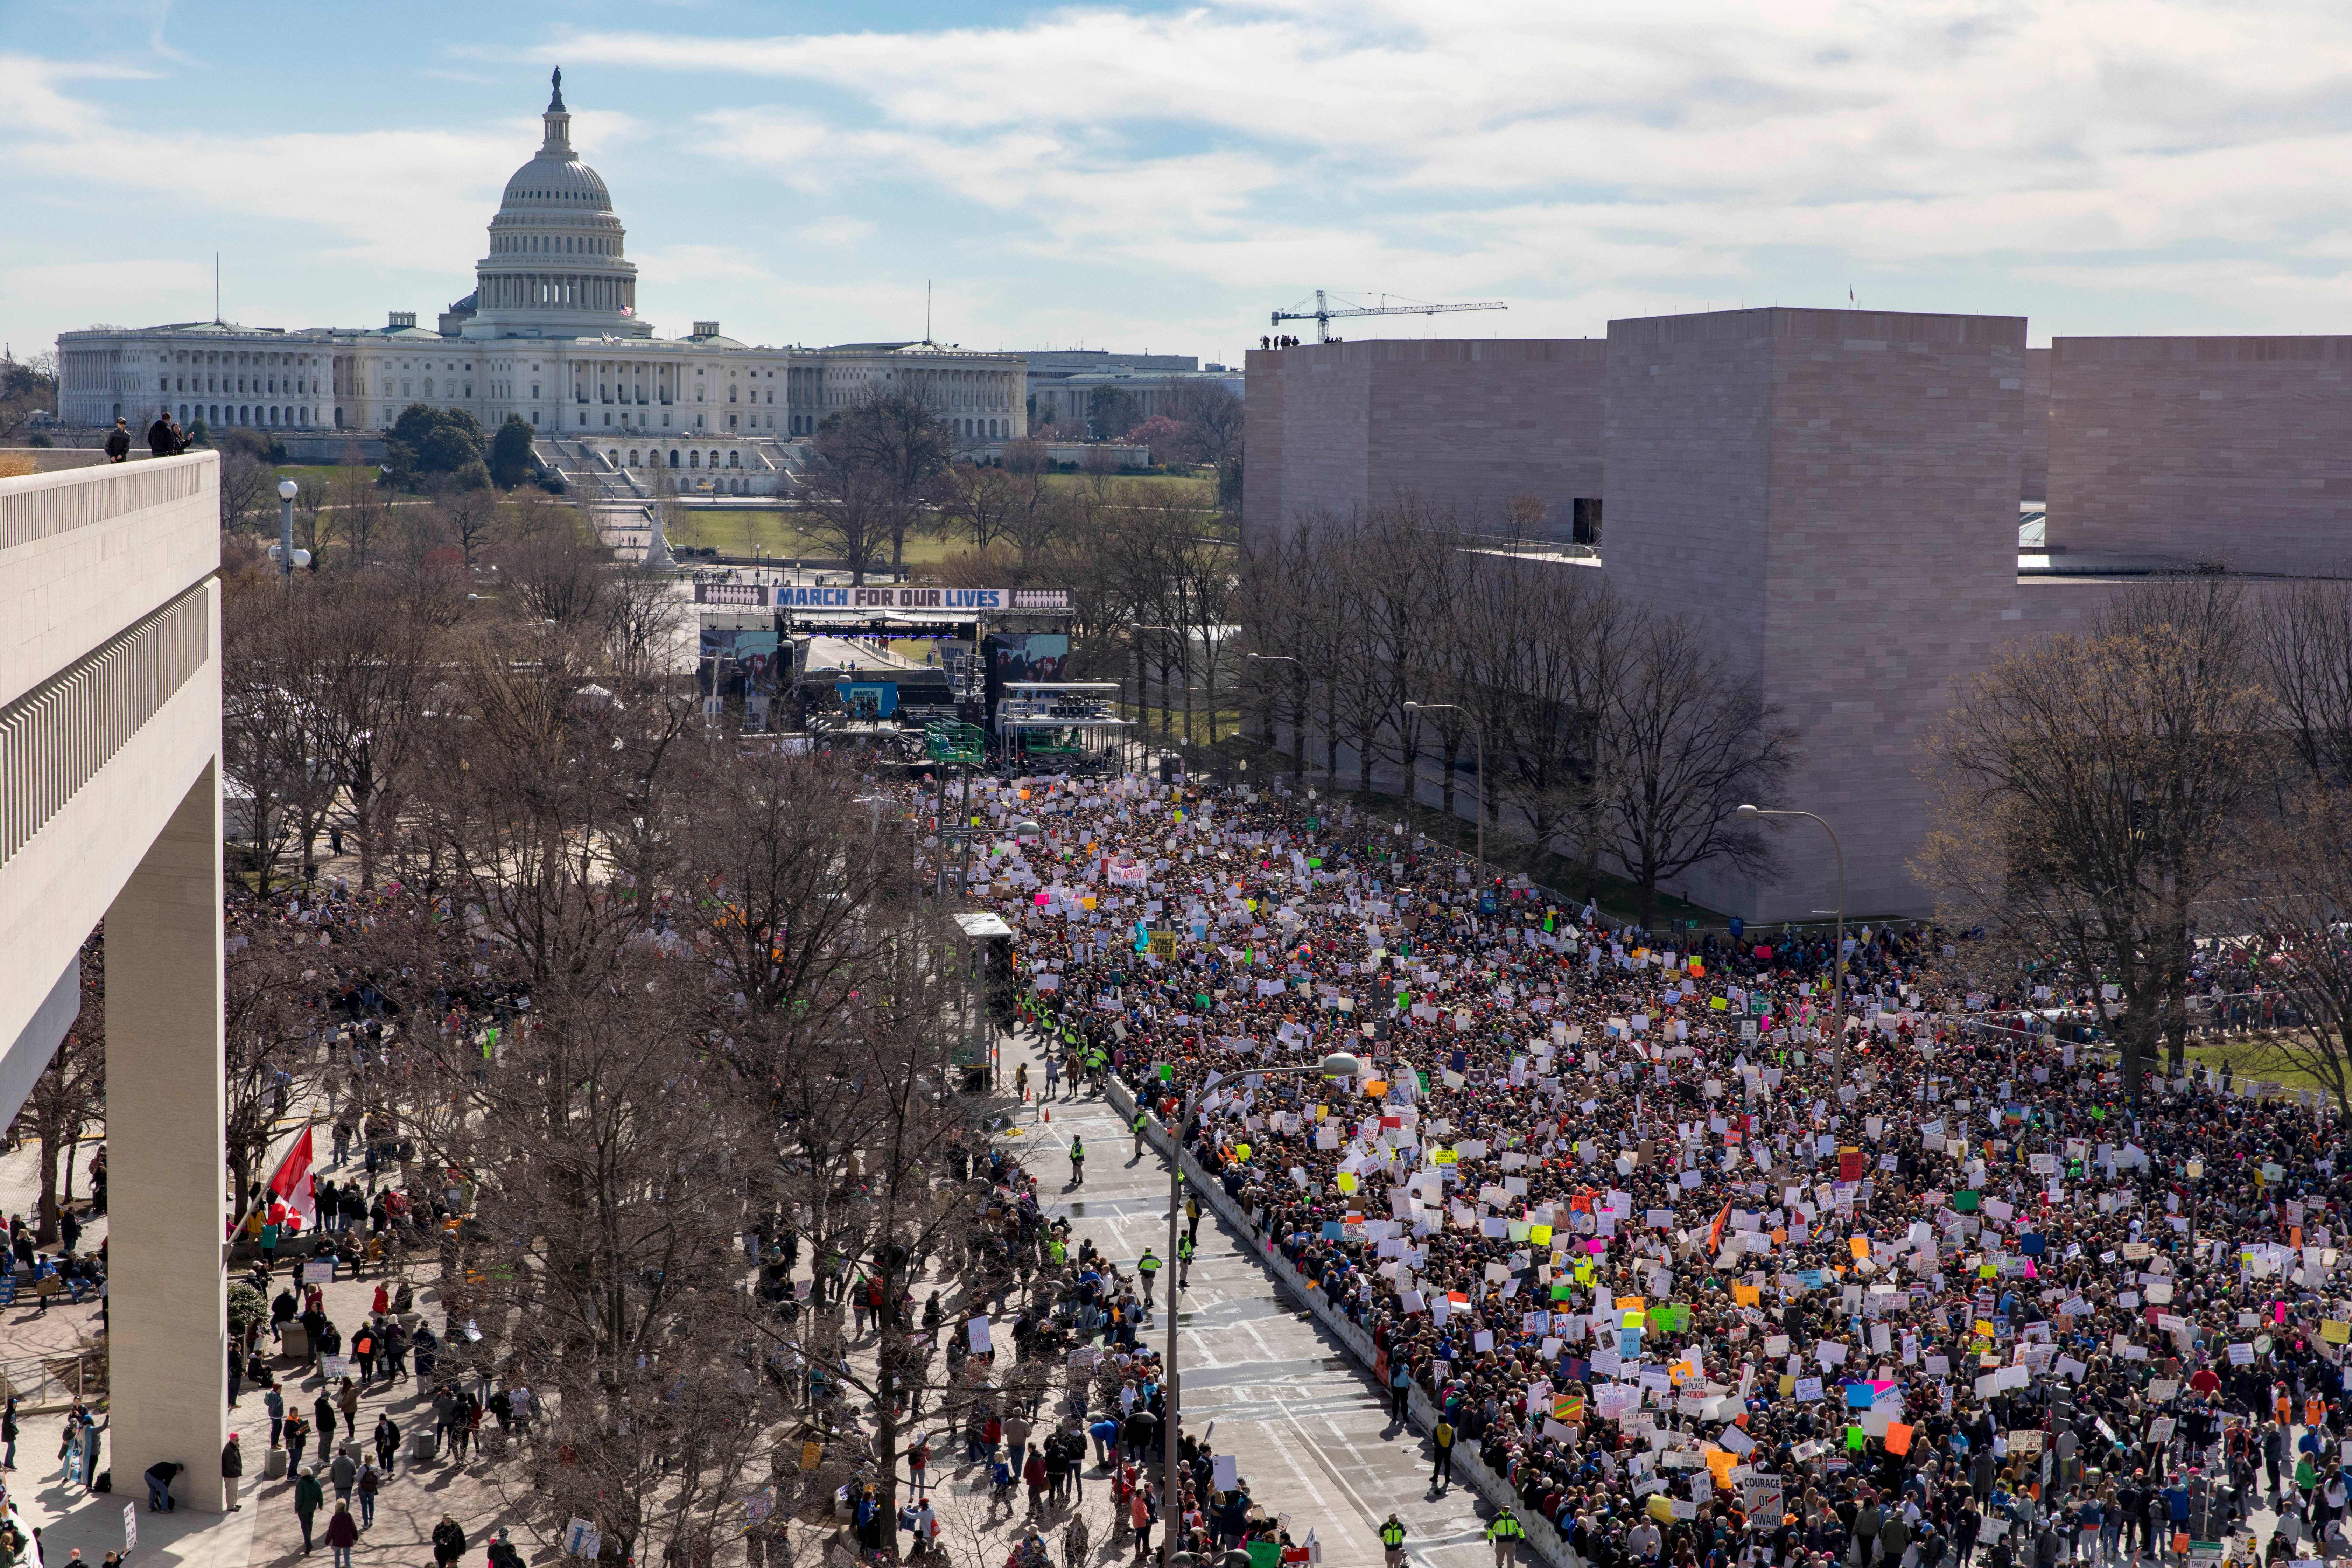 The crowd at the March for Our Lives Rally as seen from the roof of the Newseum in Washington, DC on March 24, 2018.                      Galvanized by a massacre at a Florida high school, hundreds of thousands of Americans are expected to take to the streets in cities across the United States on Saturday in the biggest protest for gun control in a generation. / AFP PHOTO / Alex Edelman        (Photo credit should read ALEX EDELMAN/AFP/Getty Images)